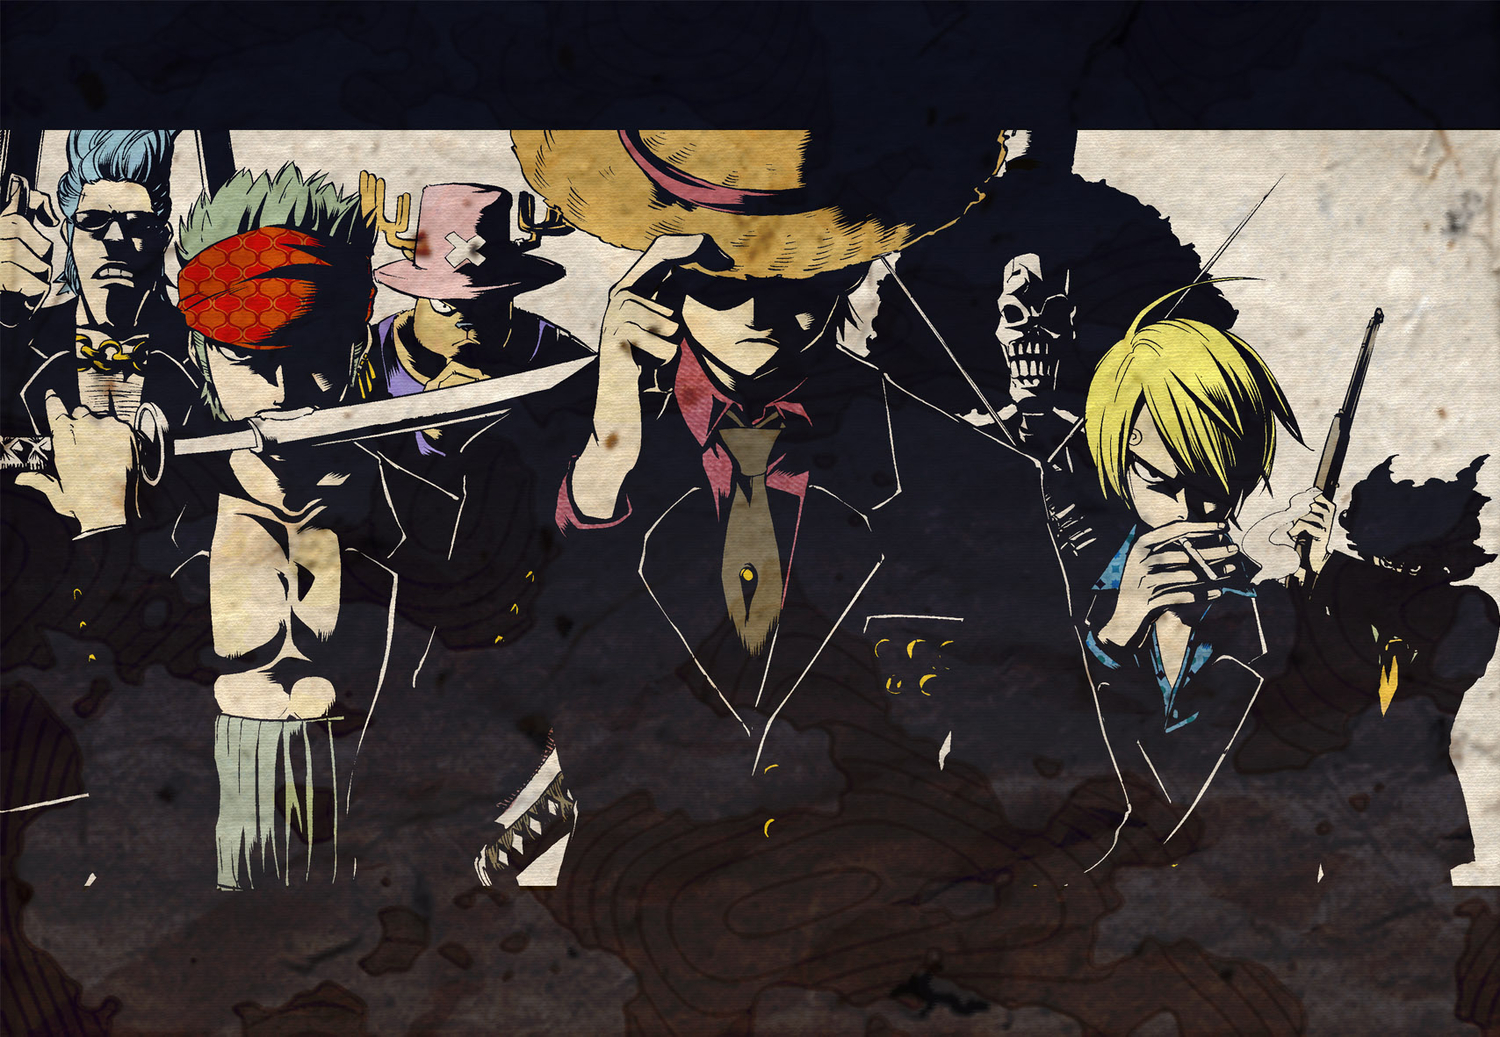 black_hair blonde_hair blue_hair brook cigarette franky group gun hat monkey_d_luffy necklace one_piece pirate roronoa_zoro sagatsune sanji short_hair skull smoking sunglasses sword tony_tony_chopper usopp weapon